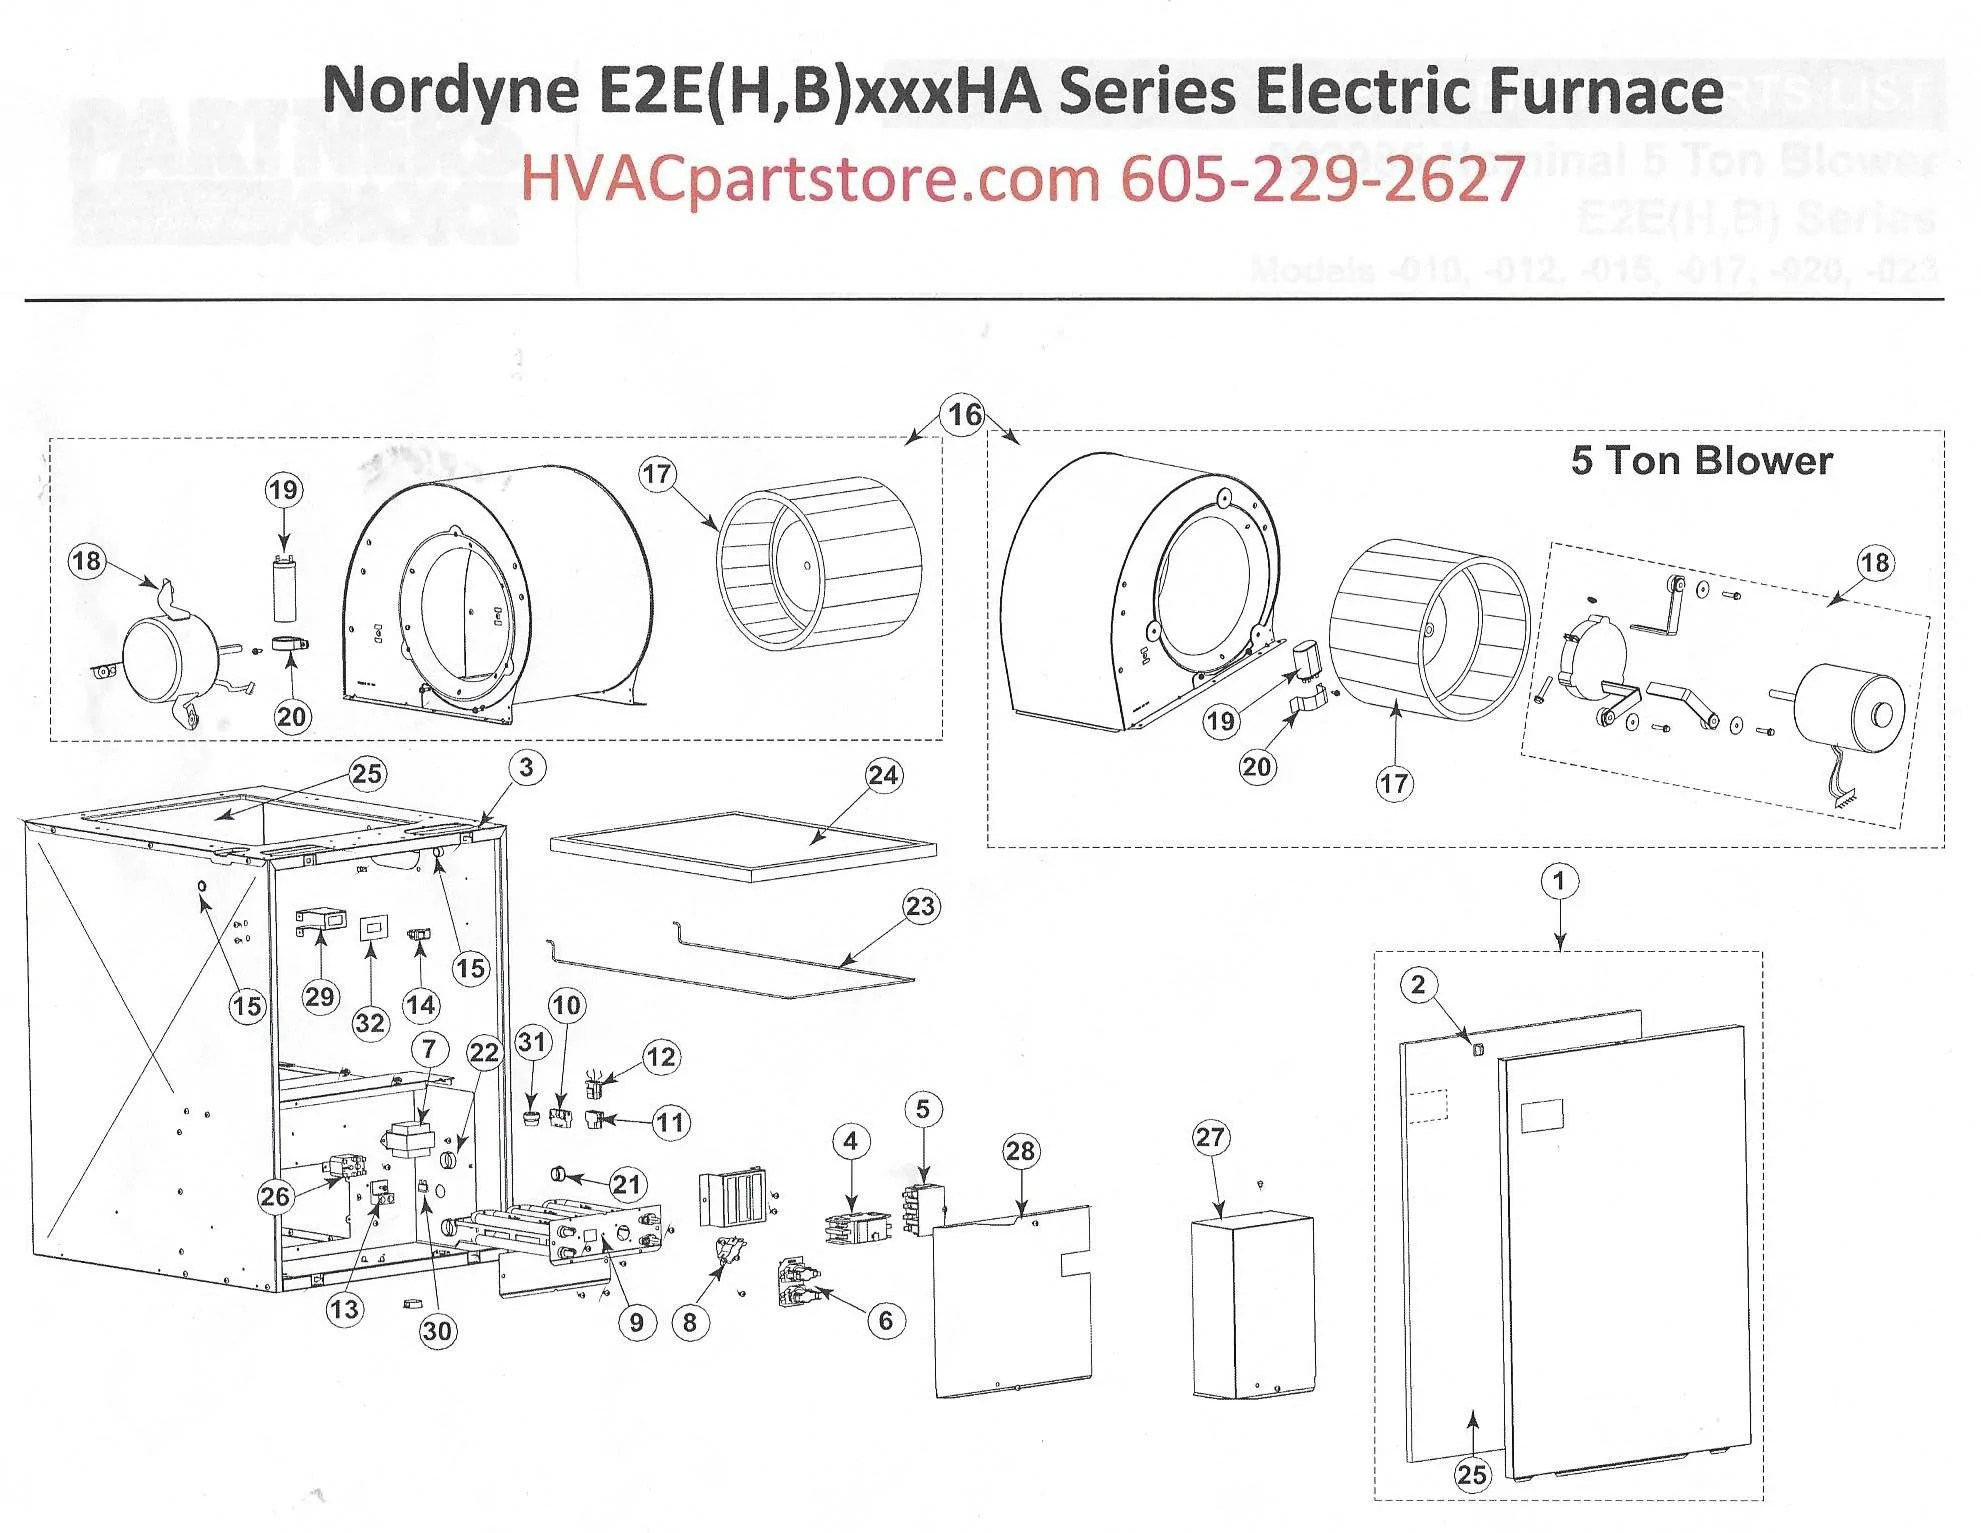 110 Volt Wire Relay Diagram E2eb020ha Nordyne Electric Furnace Parts Hvacpartstore